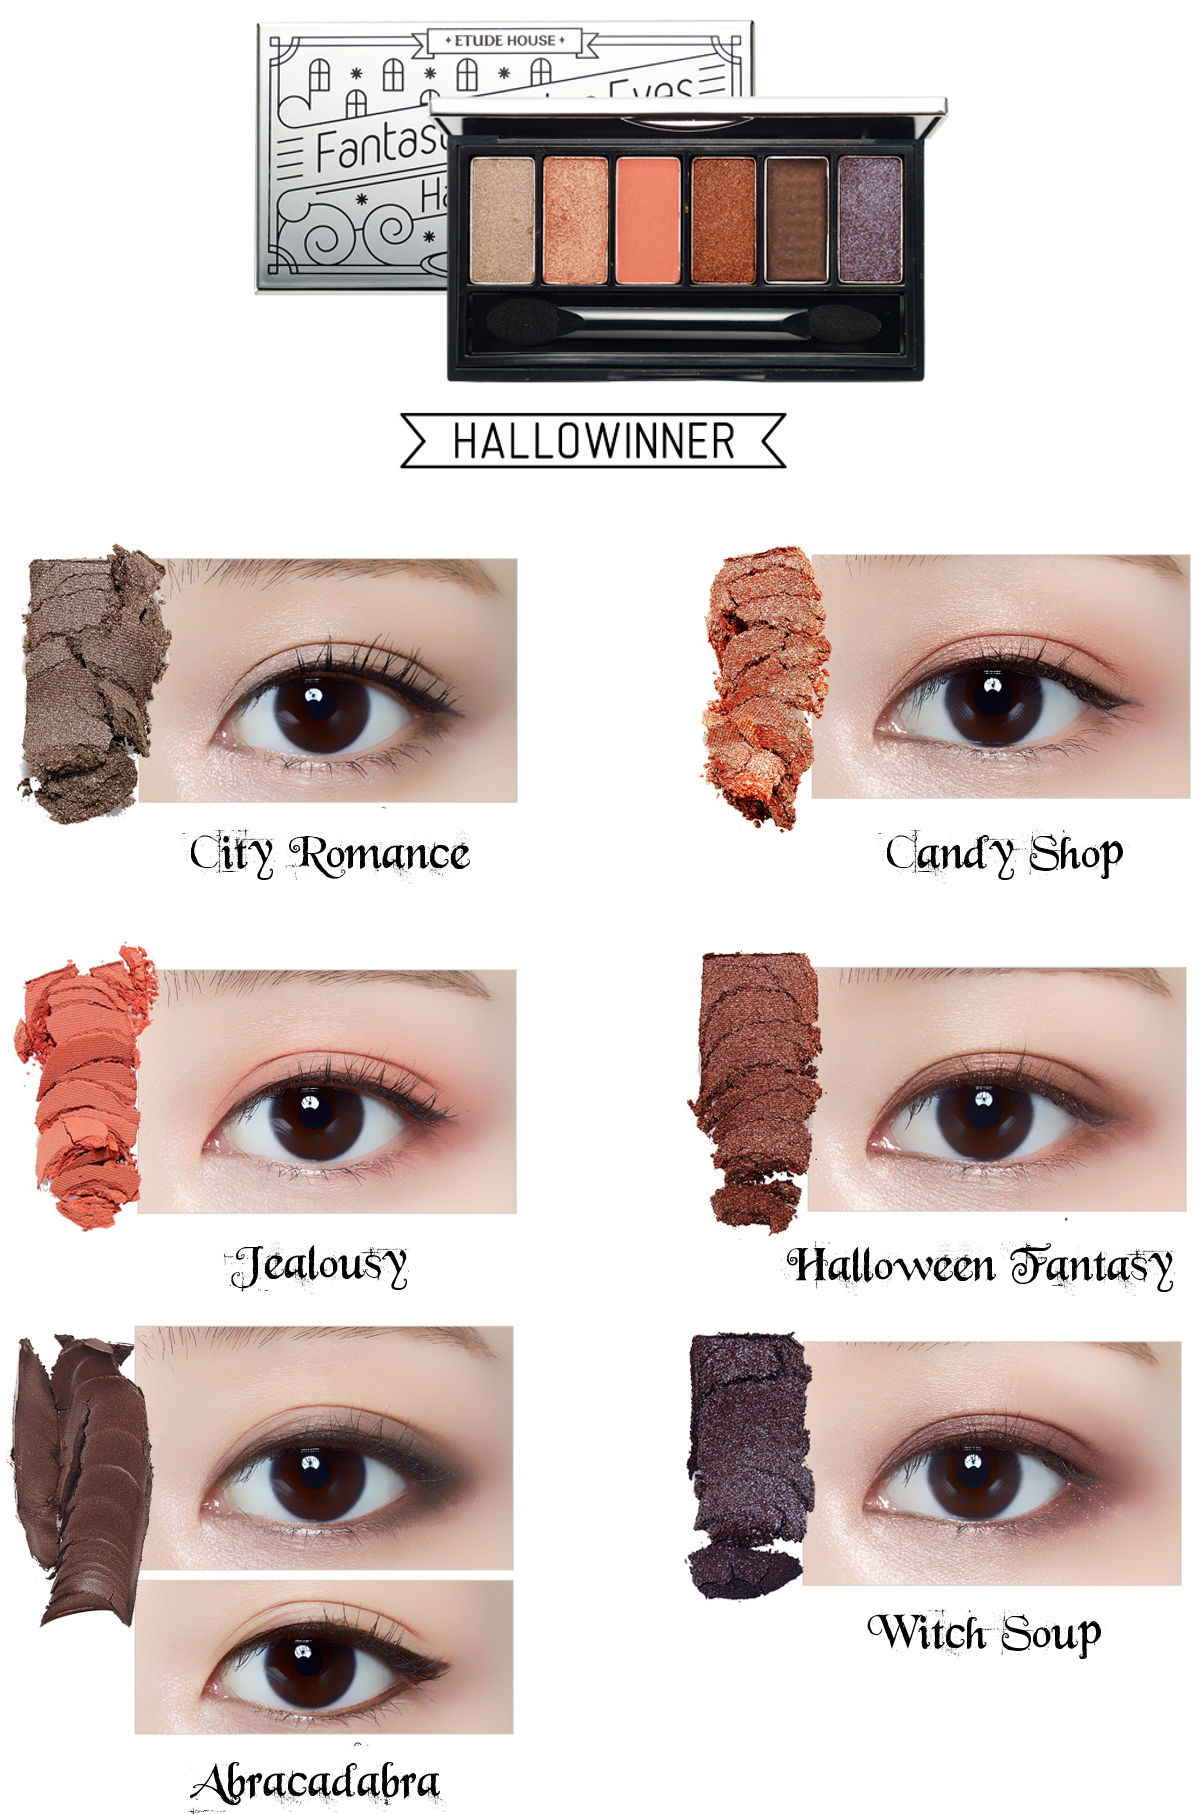 Etude House Halloween Fantastic Color Eyes Hallowinner